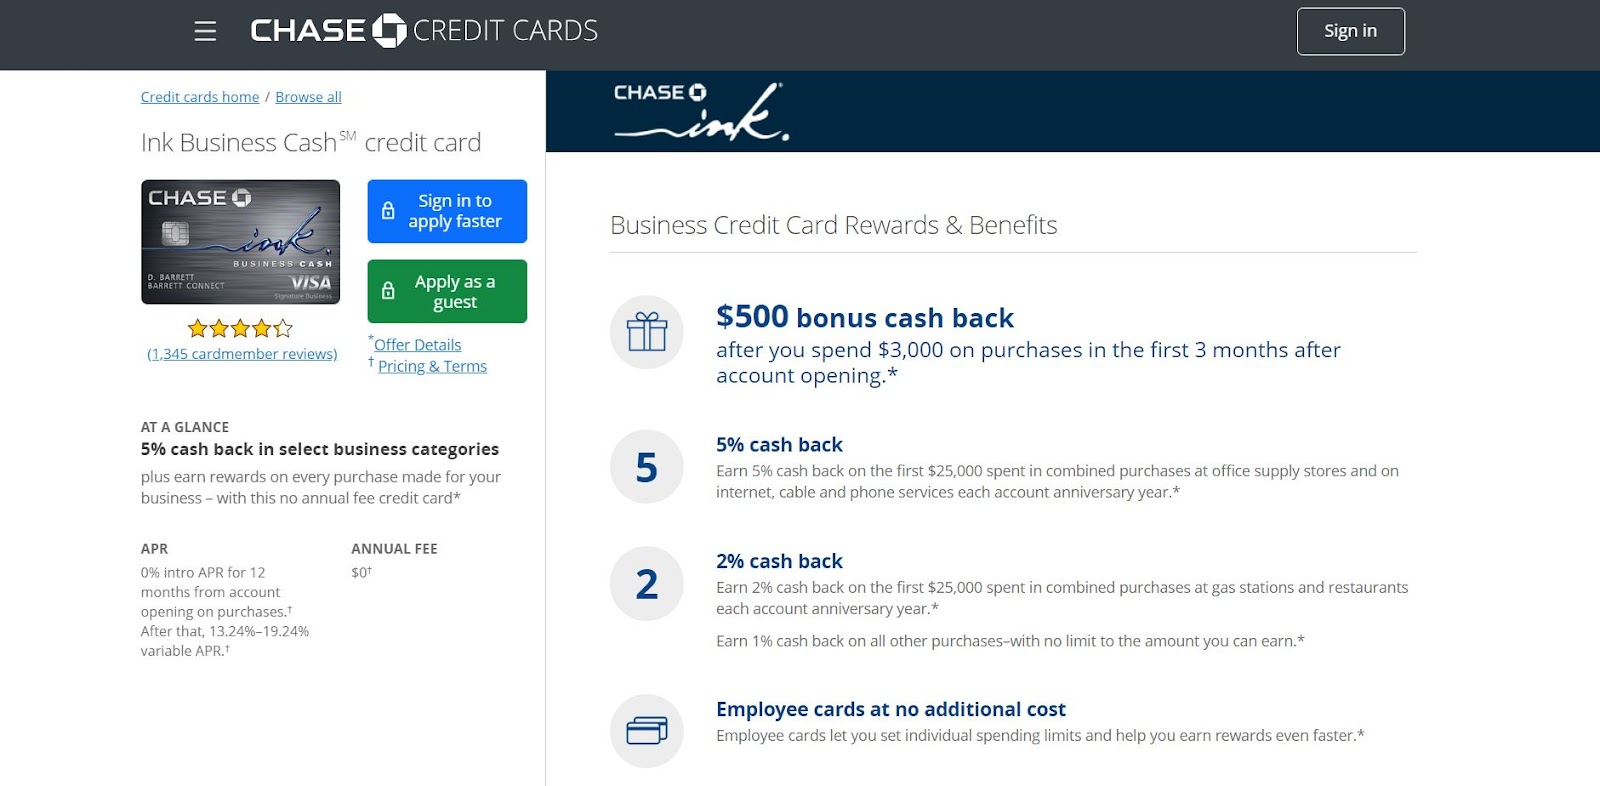 Chase Ink Business Cash Credit Card: The Top 10 Business Credit Cards for Small Businesses